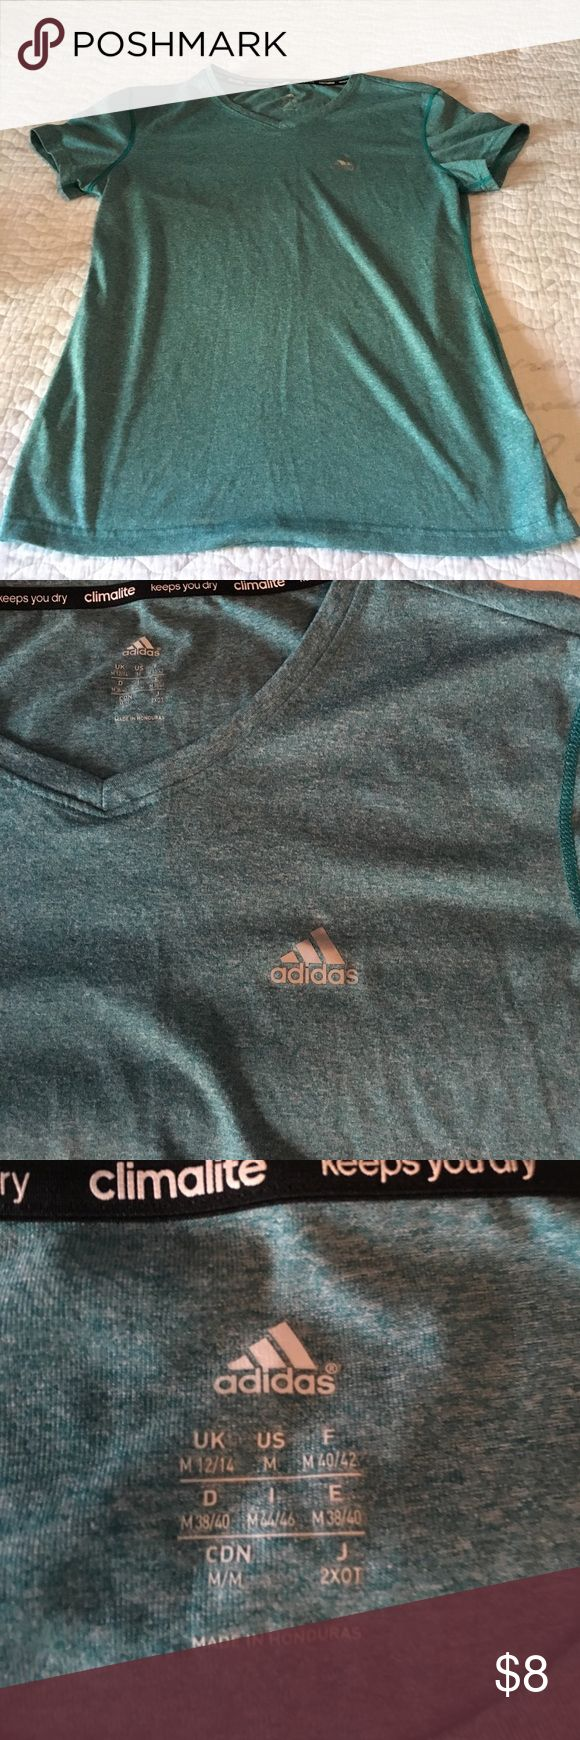 Adidas work out top Teal short sleeve Adidas workout shirt! Only worn once! Tops Tees - Long Sleeve